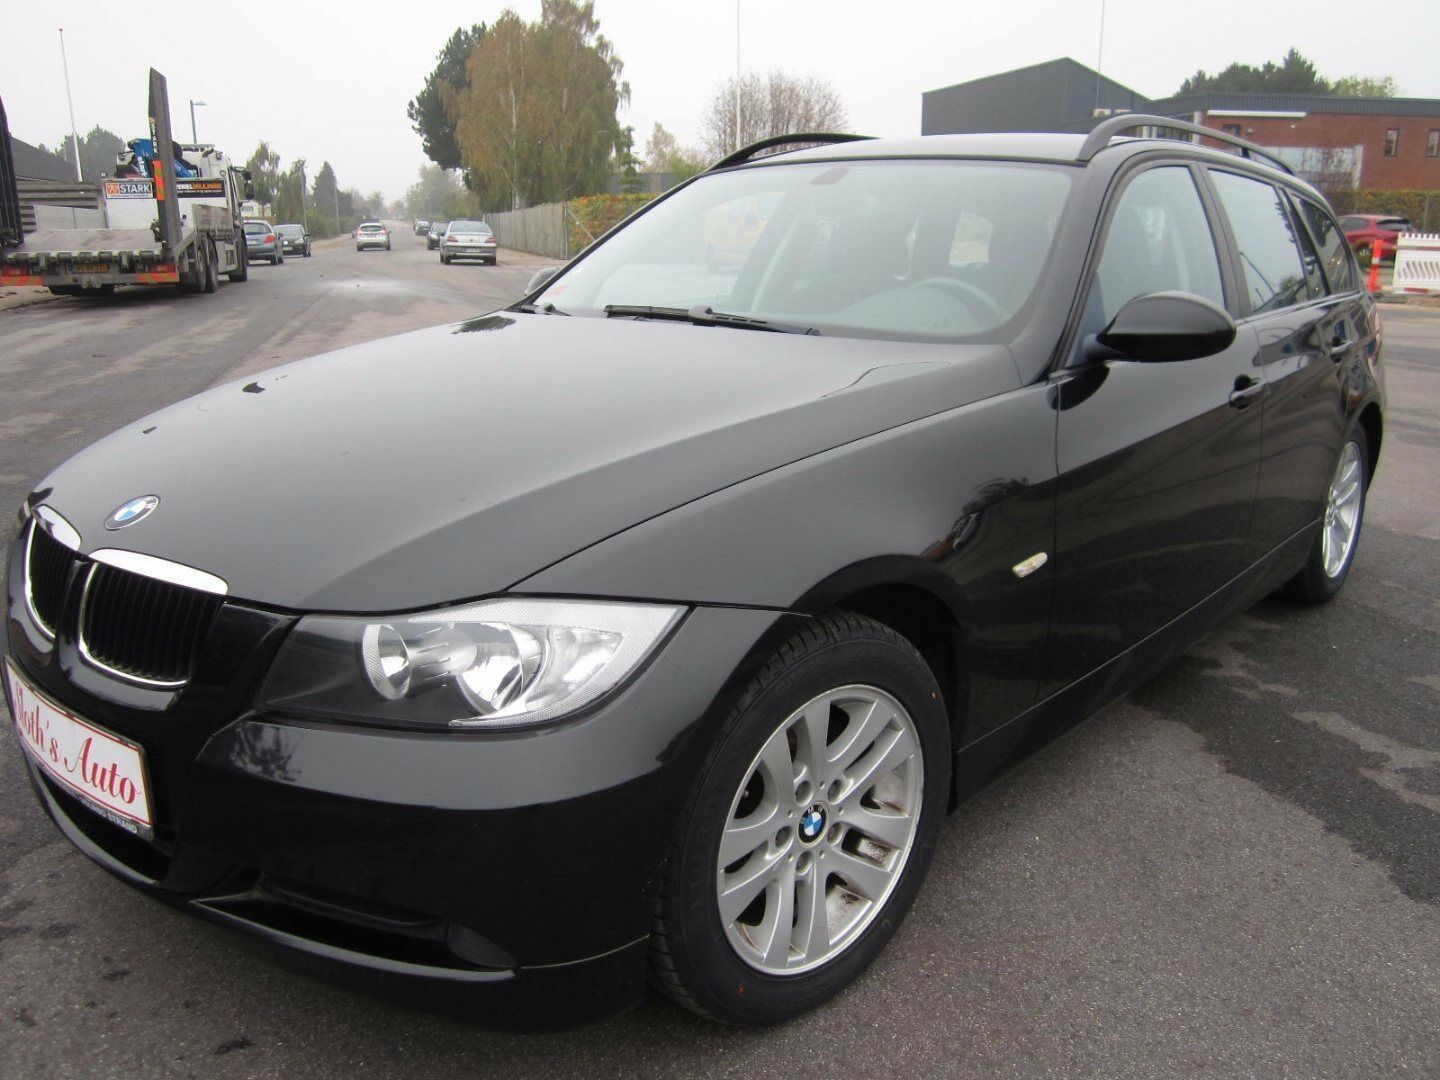 BMW 320d 2,0 Touring 5d - 129.900 kr.